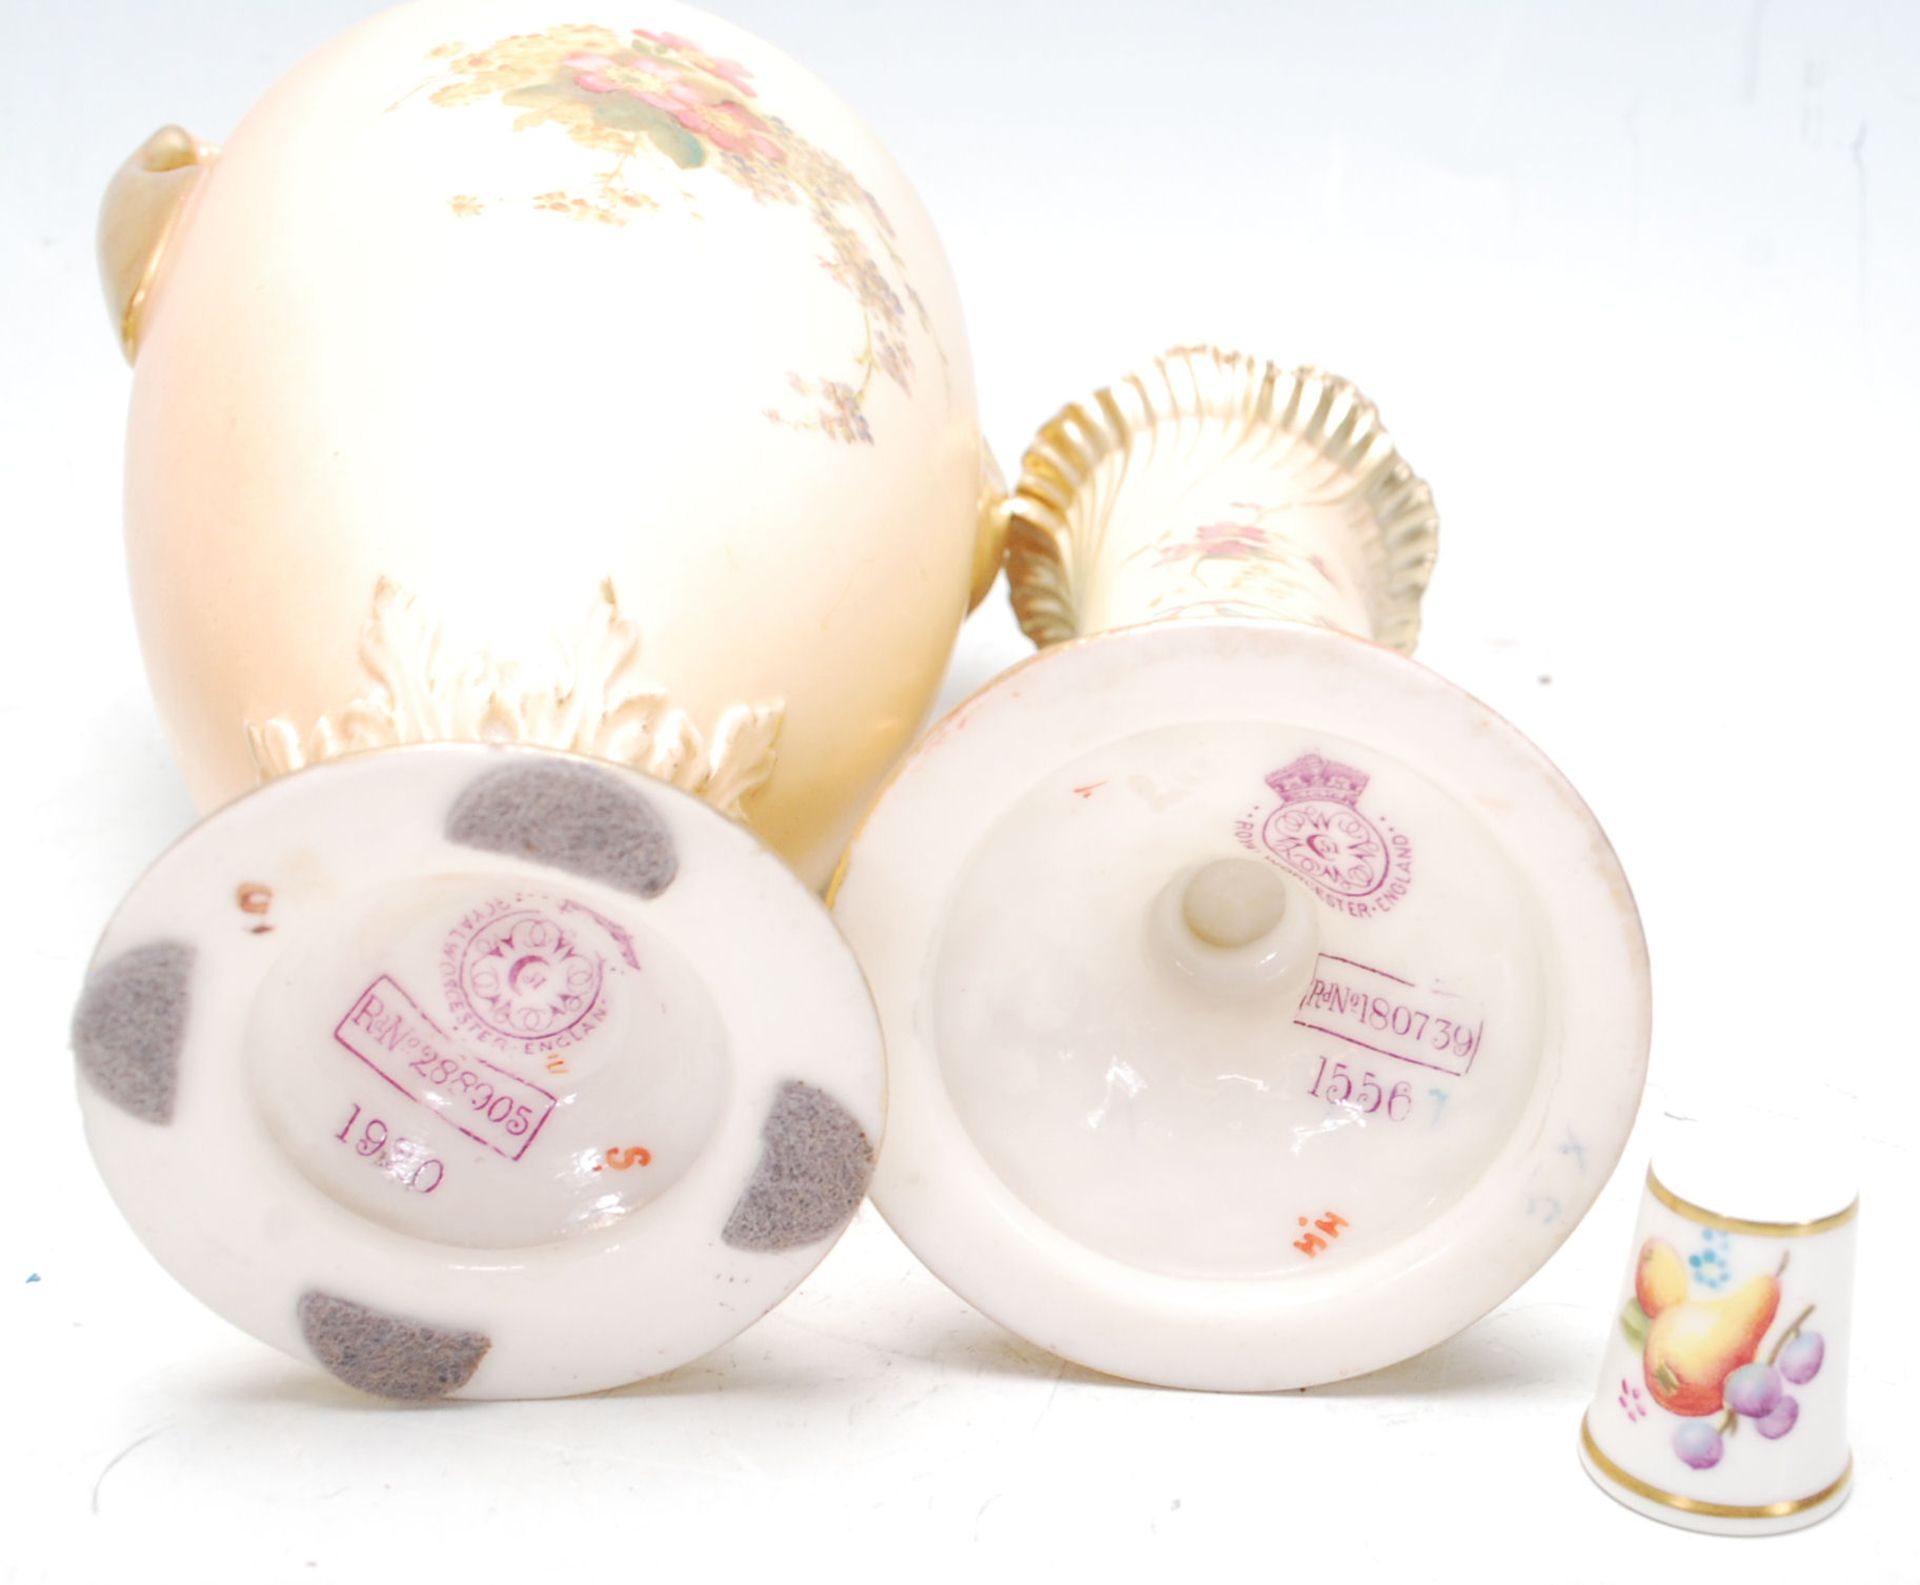 Los 19 - Group of Three Royal Worcester blush ivory vases, hand painted with flowers and gilded decoration,